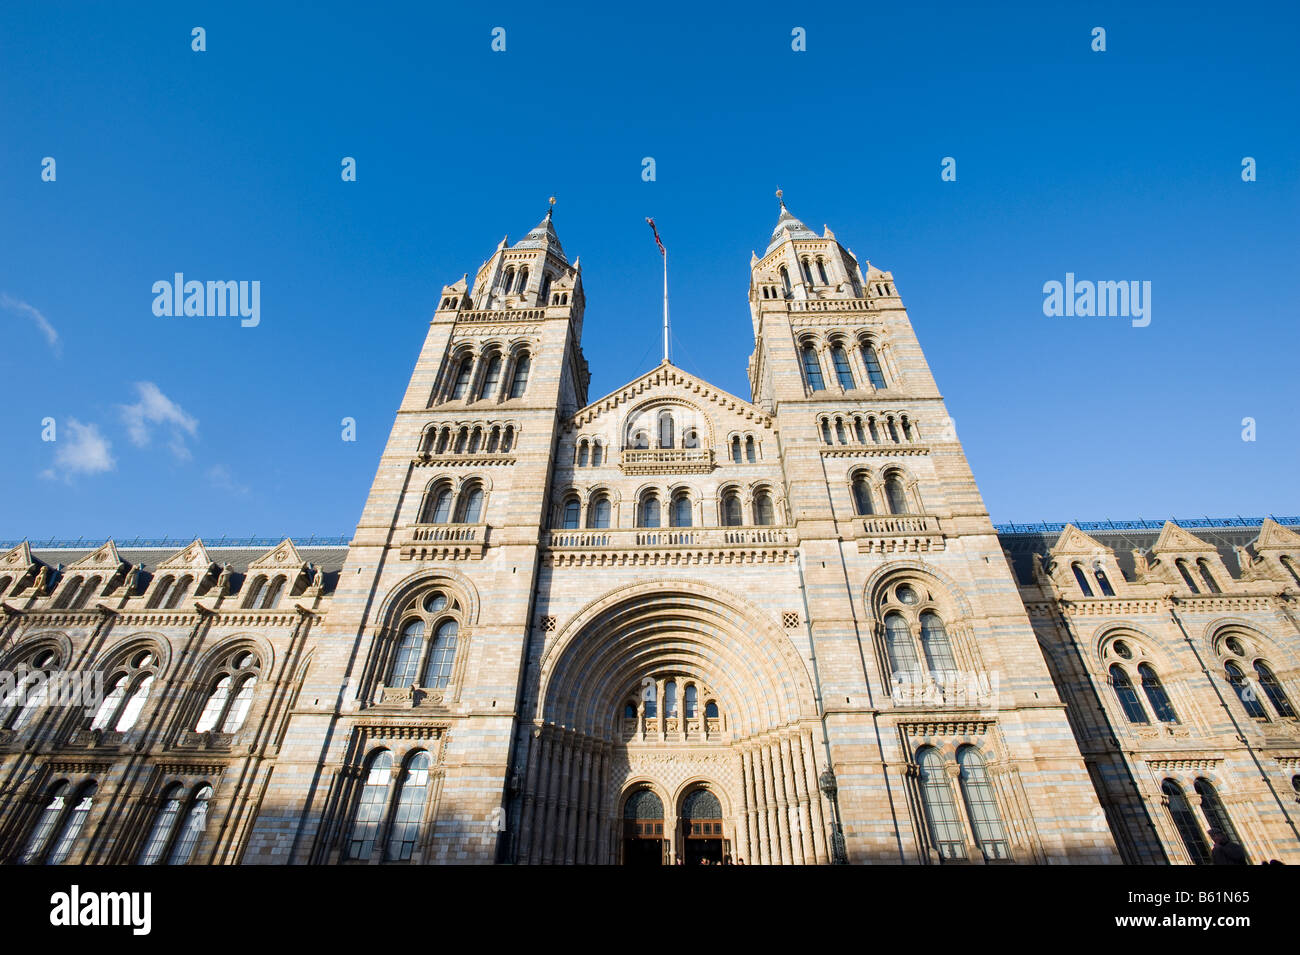 Front facade of Natural History Museum London United Kingdom - Stock Image